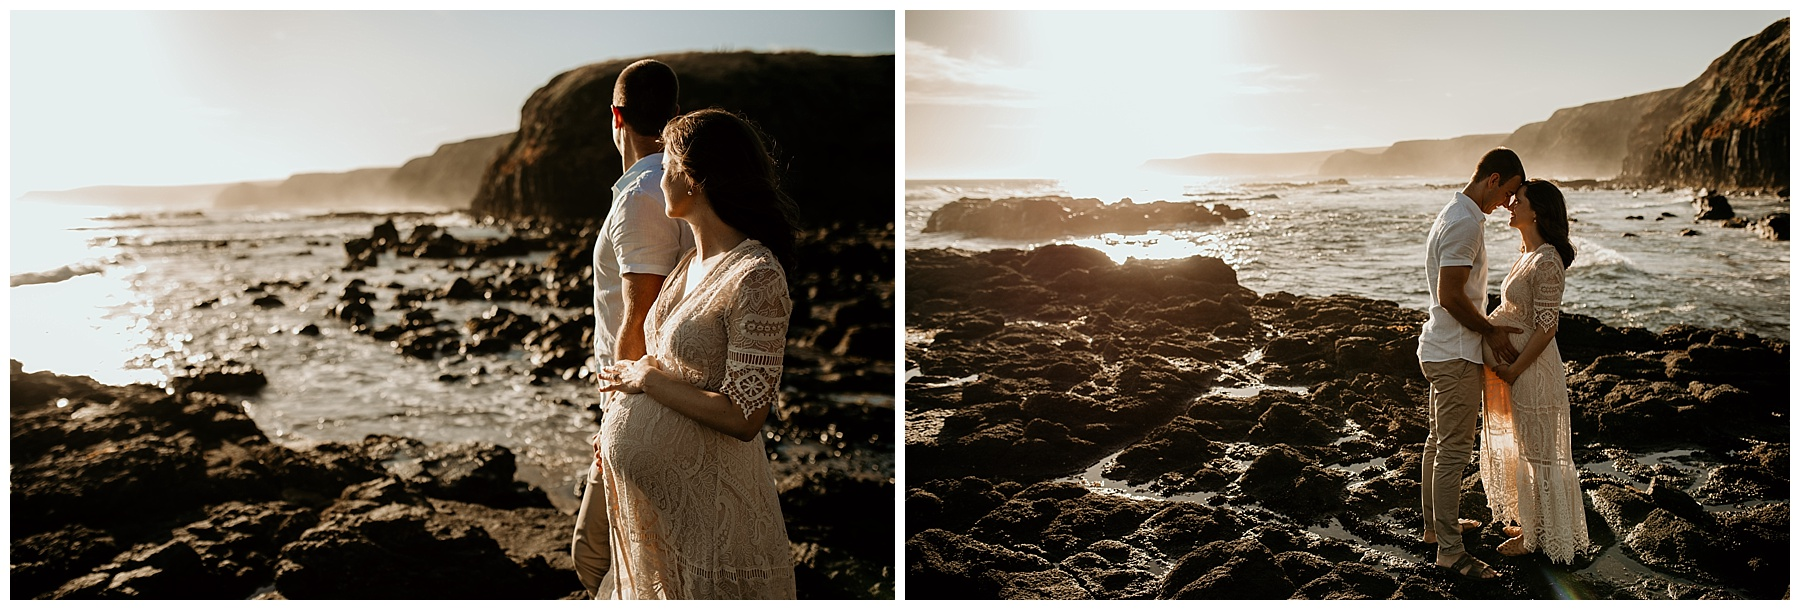 flinders maternity photography